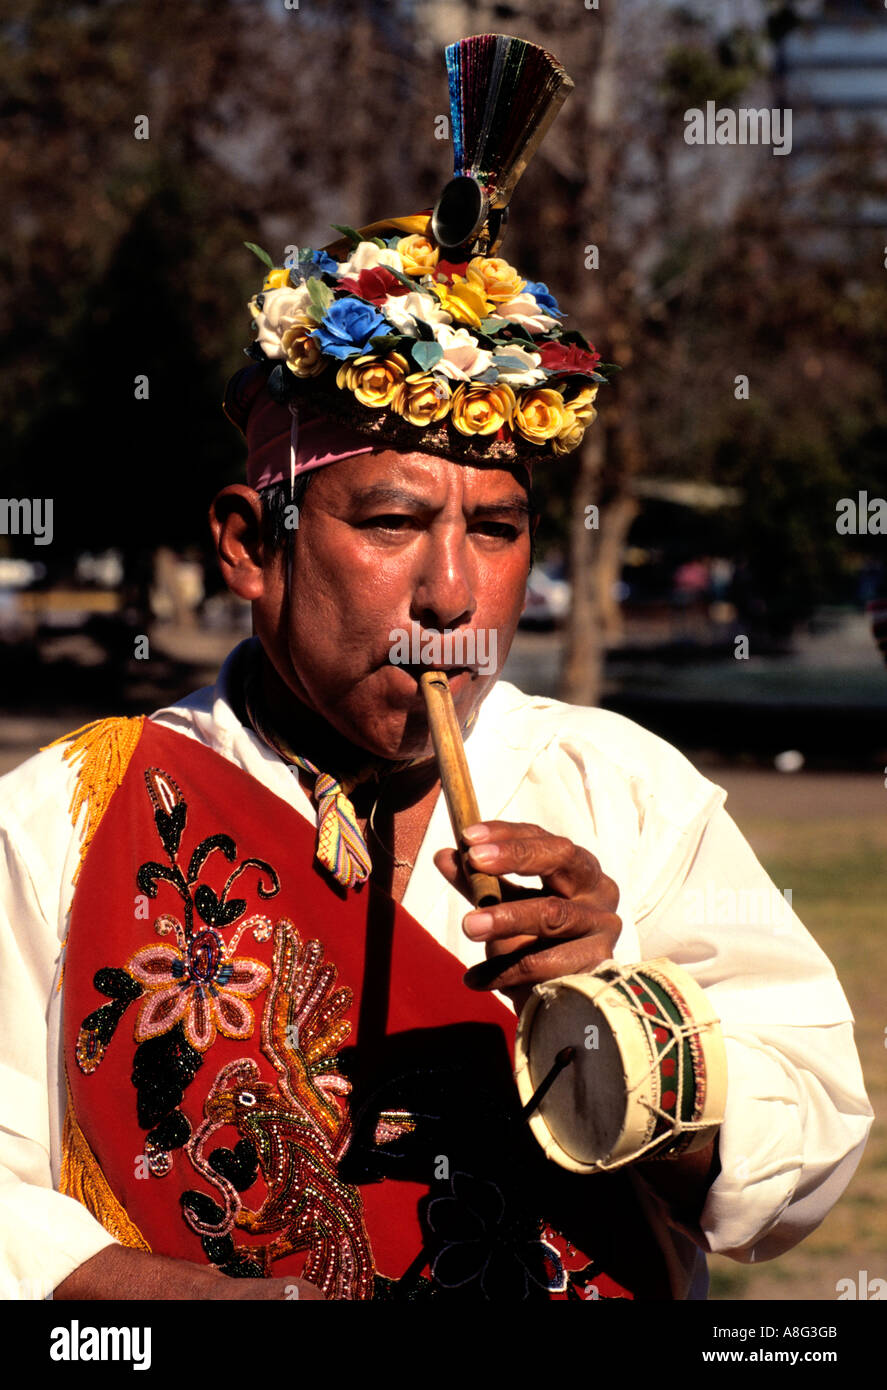 Mexico Mexican Flute music man Native American - Stock Image